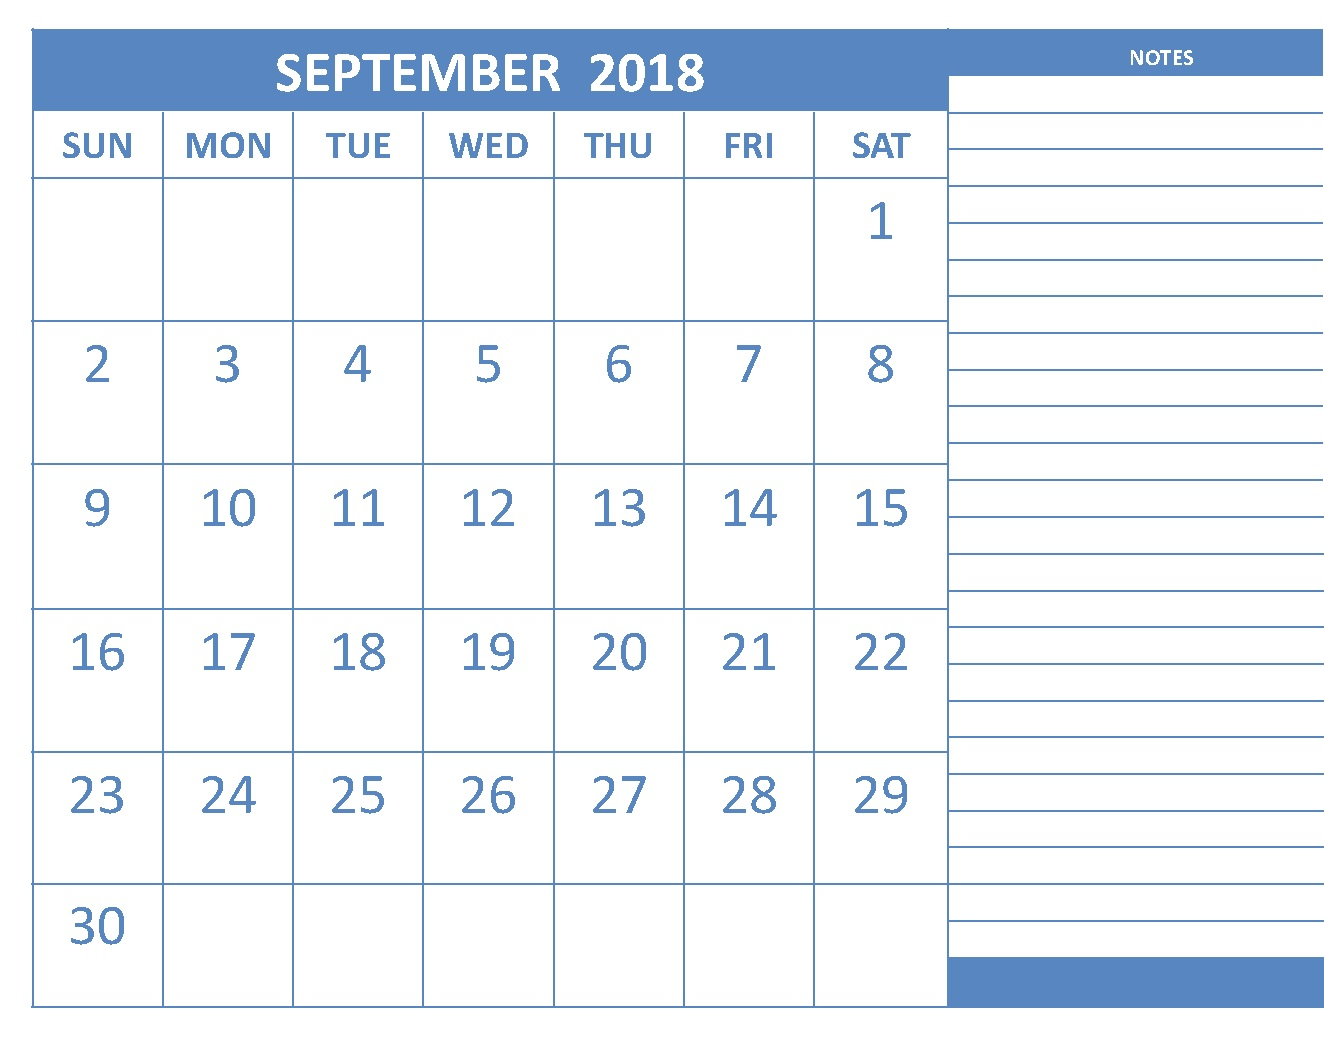 September 2018 Calendar Page With Notes